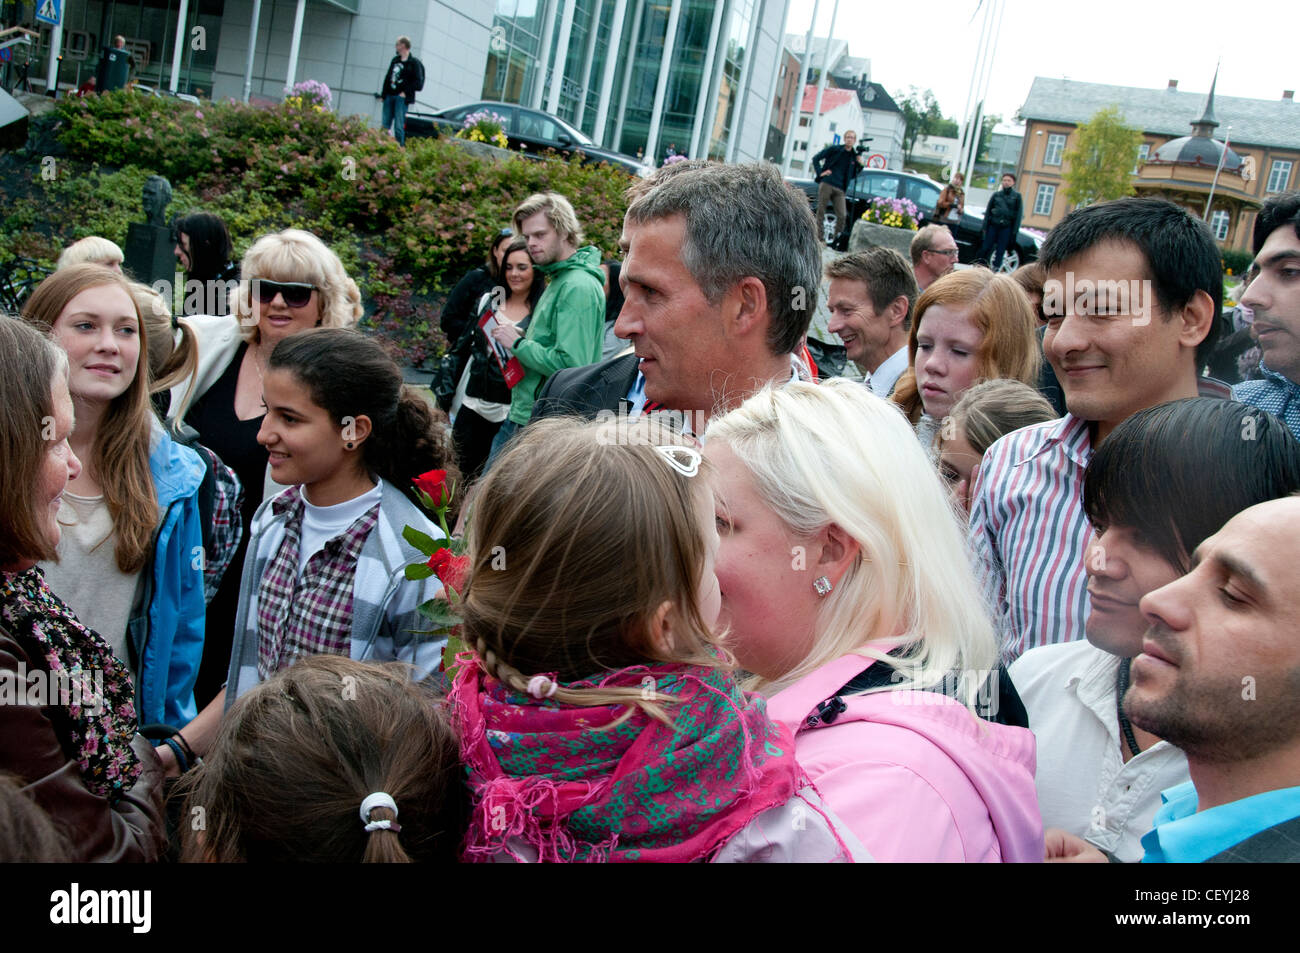 Norway, Tromso.  Prime Minister, Jens Stoltenberg (centre) campaigning prior to elections. Tromso now very ethnically - Stock Image